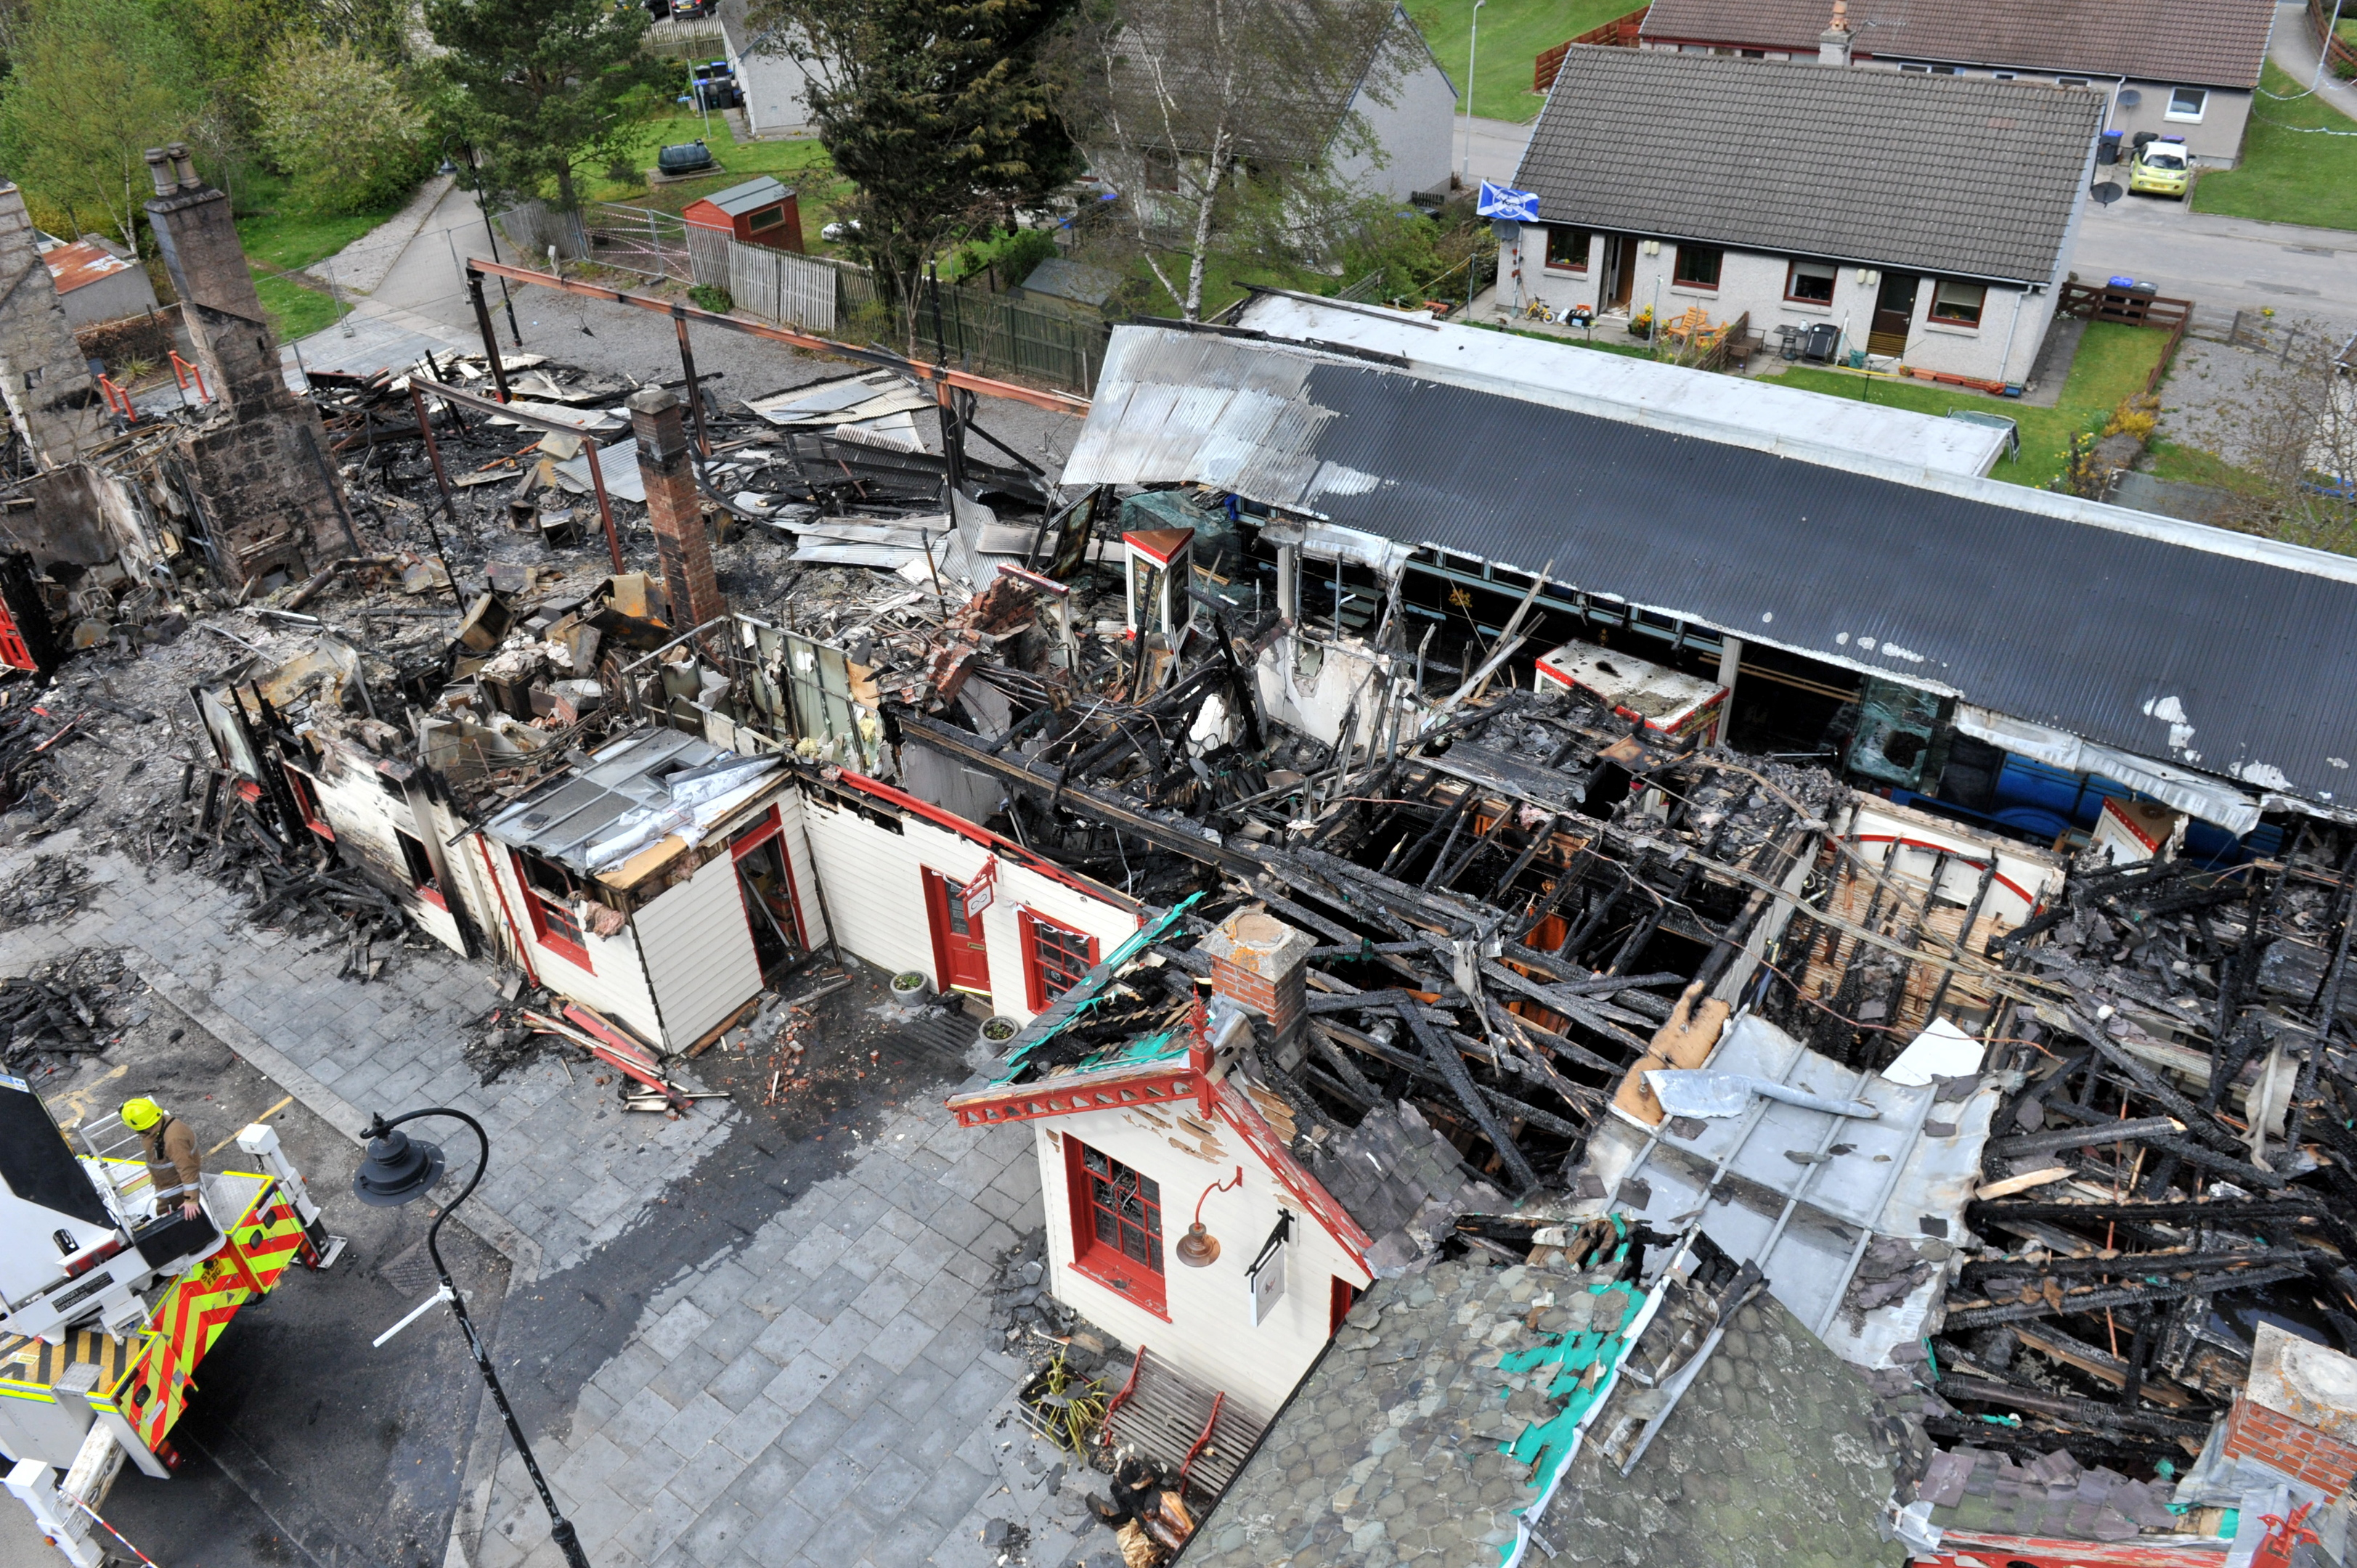 Businesses situated in the building were left devastated.